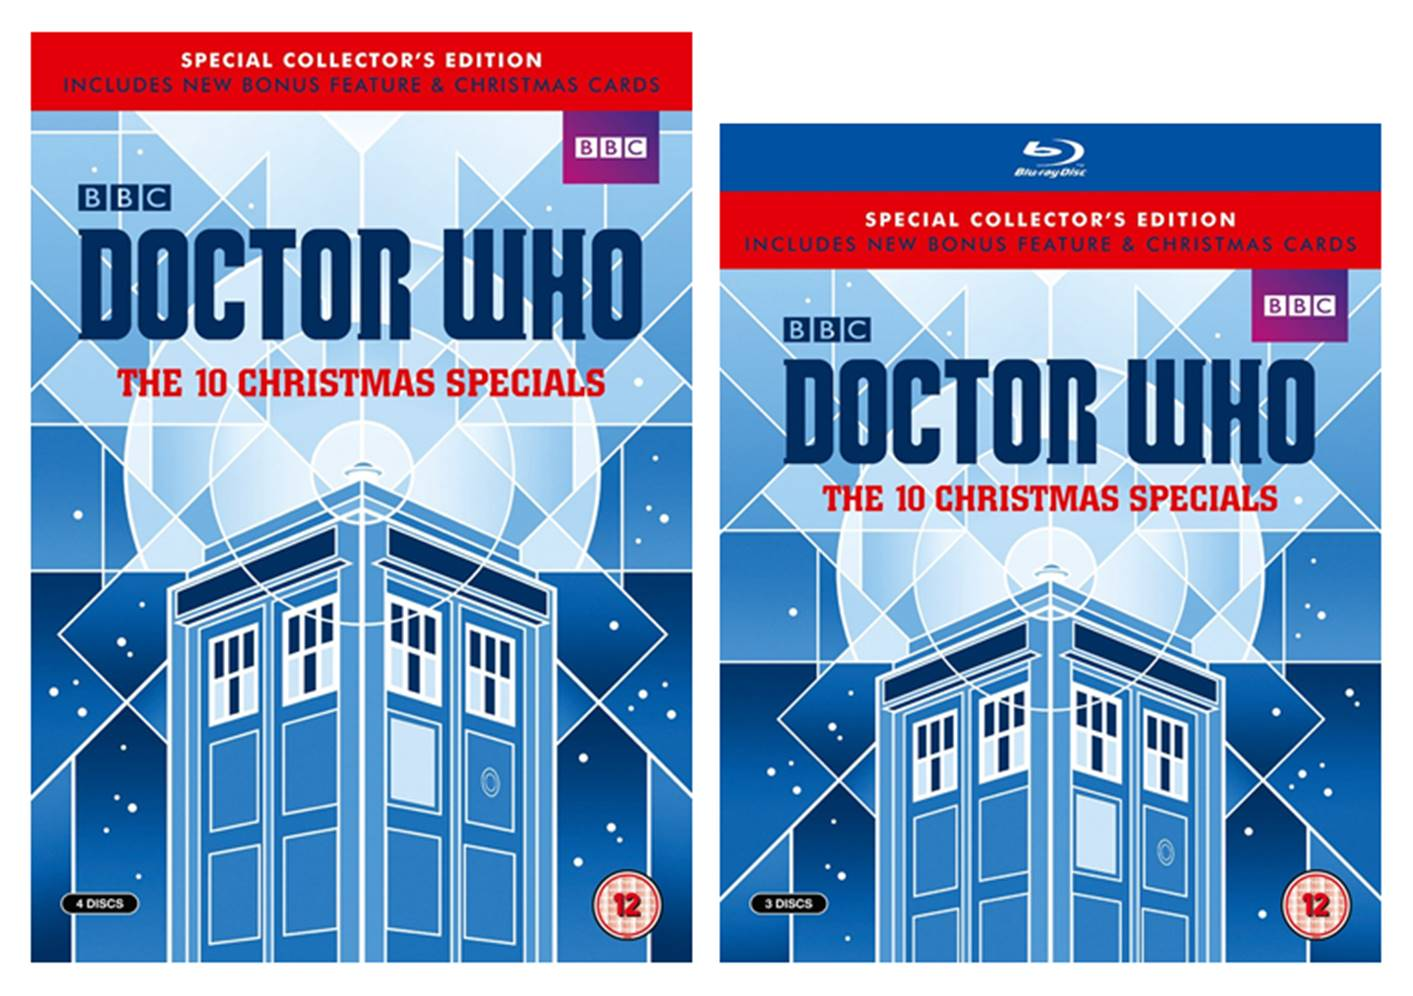 the 10 christmas specials dvd blu ray boxsets covers details - 2015 Christmas Specials